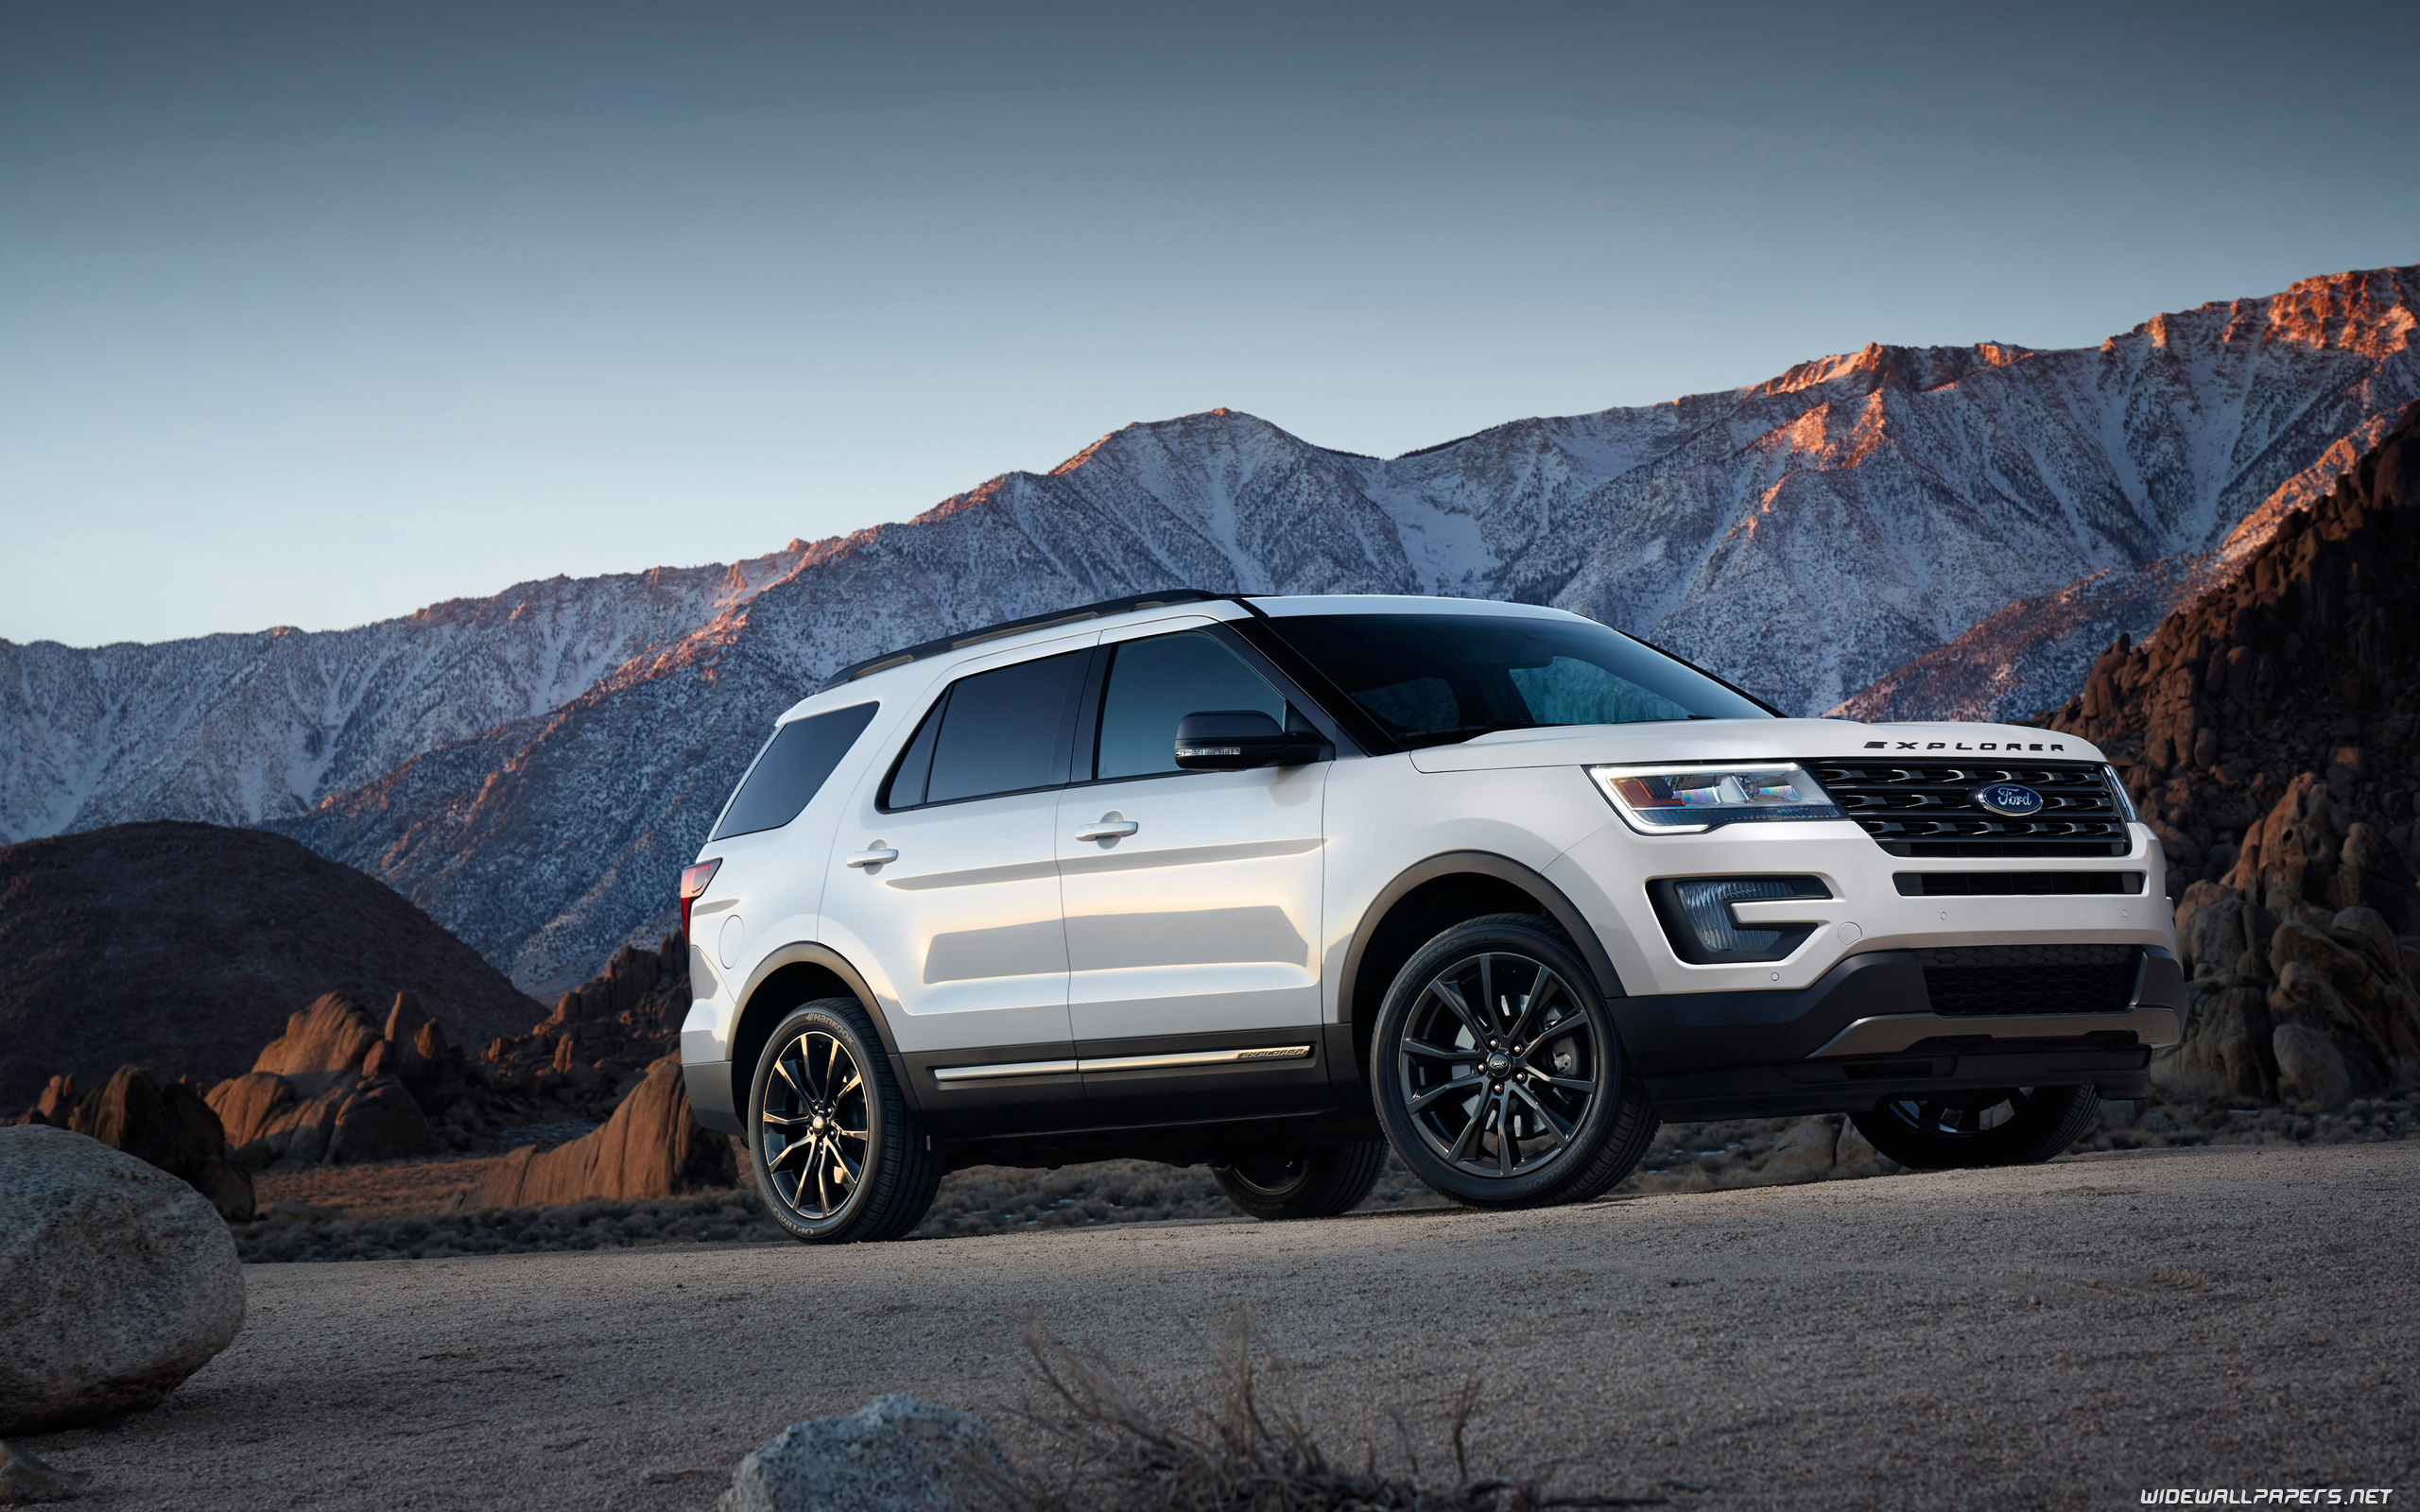 Ford Explorer Cars Desktop Wallpapers 4K Ultra HD